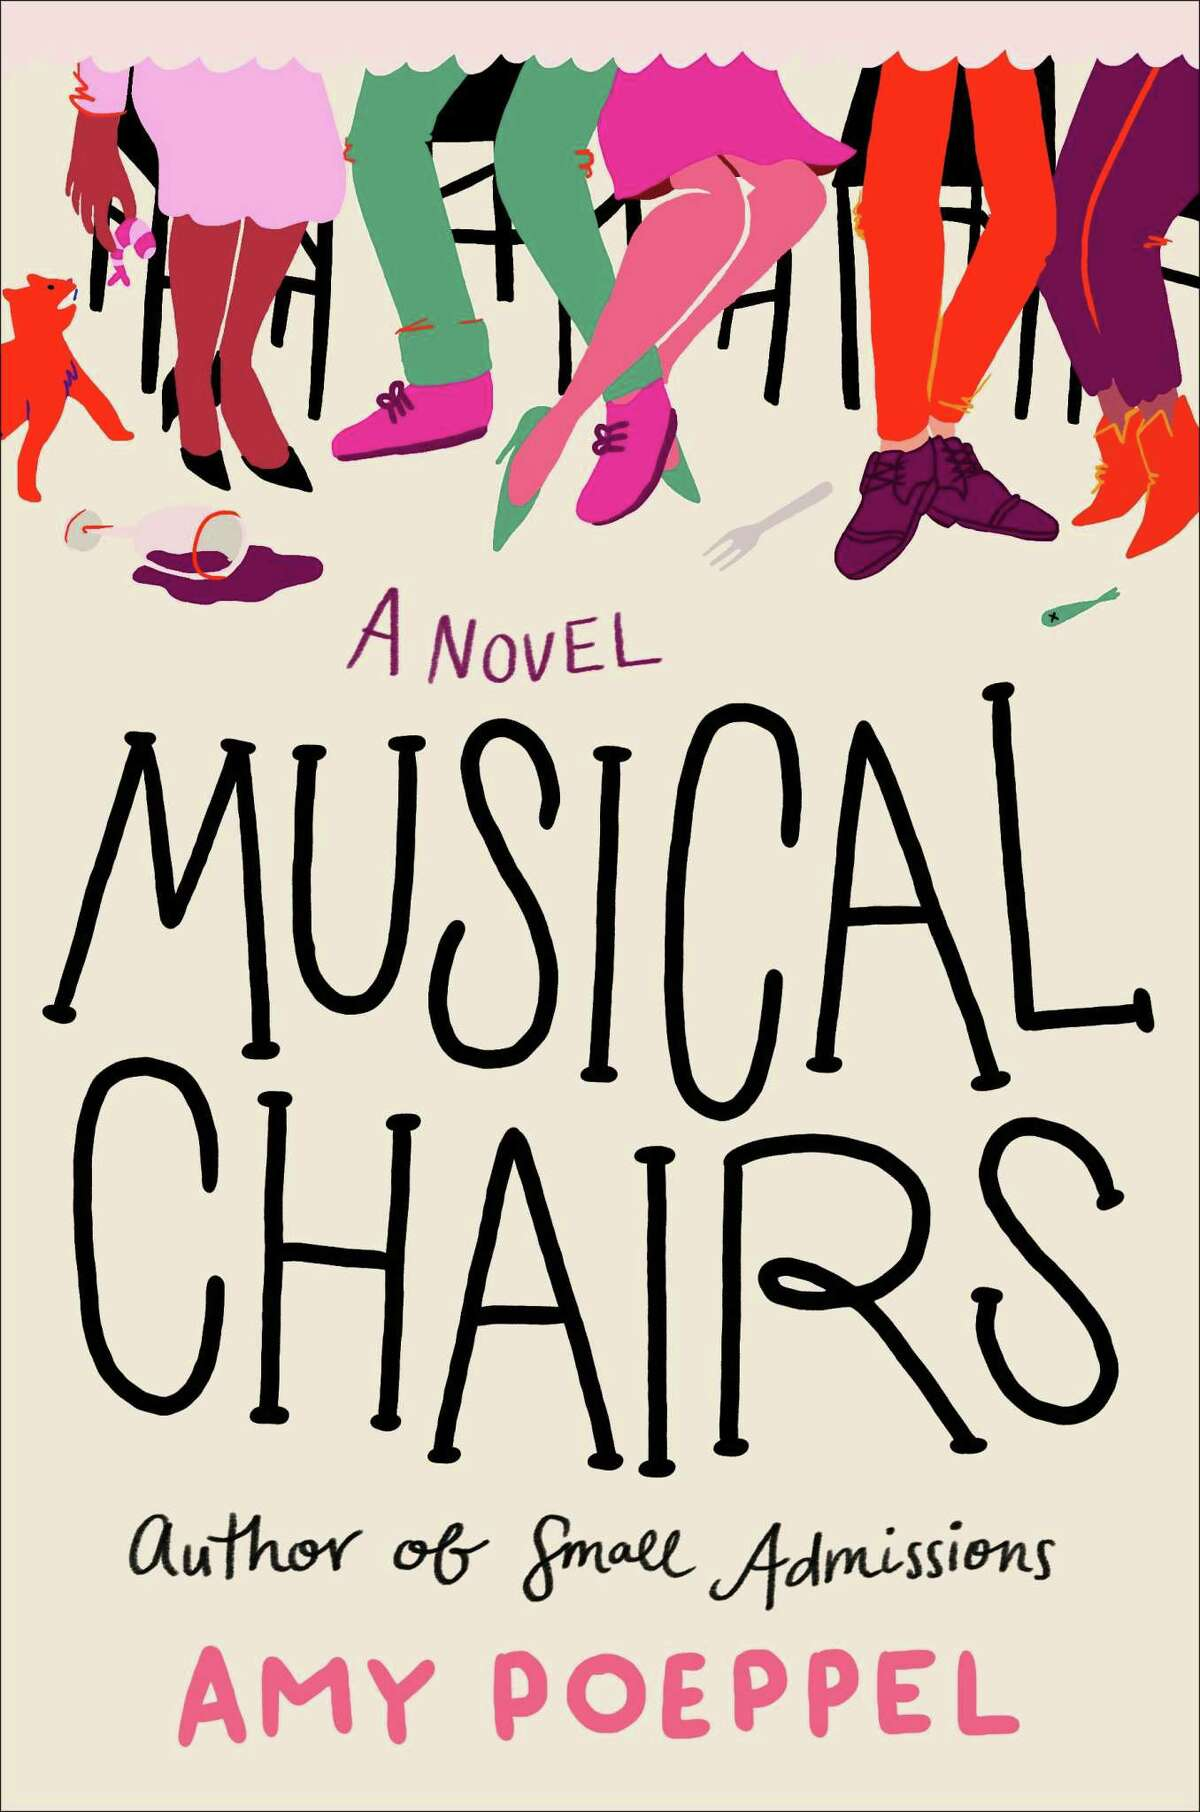 """Kent author Amy Poeppel will discuss her new book, """"Musical Chairs,"""" with author Elinor Lipman, Aug. 20 at 7 p.m. on Zoom. The free event is co-sponsored by Kent Memorial Library and House of Books."""